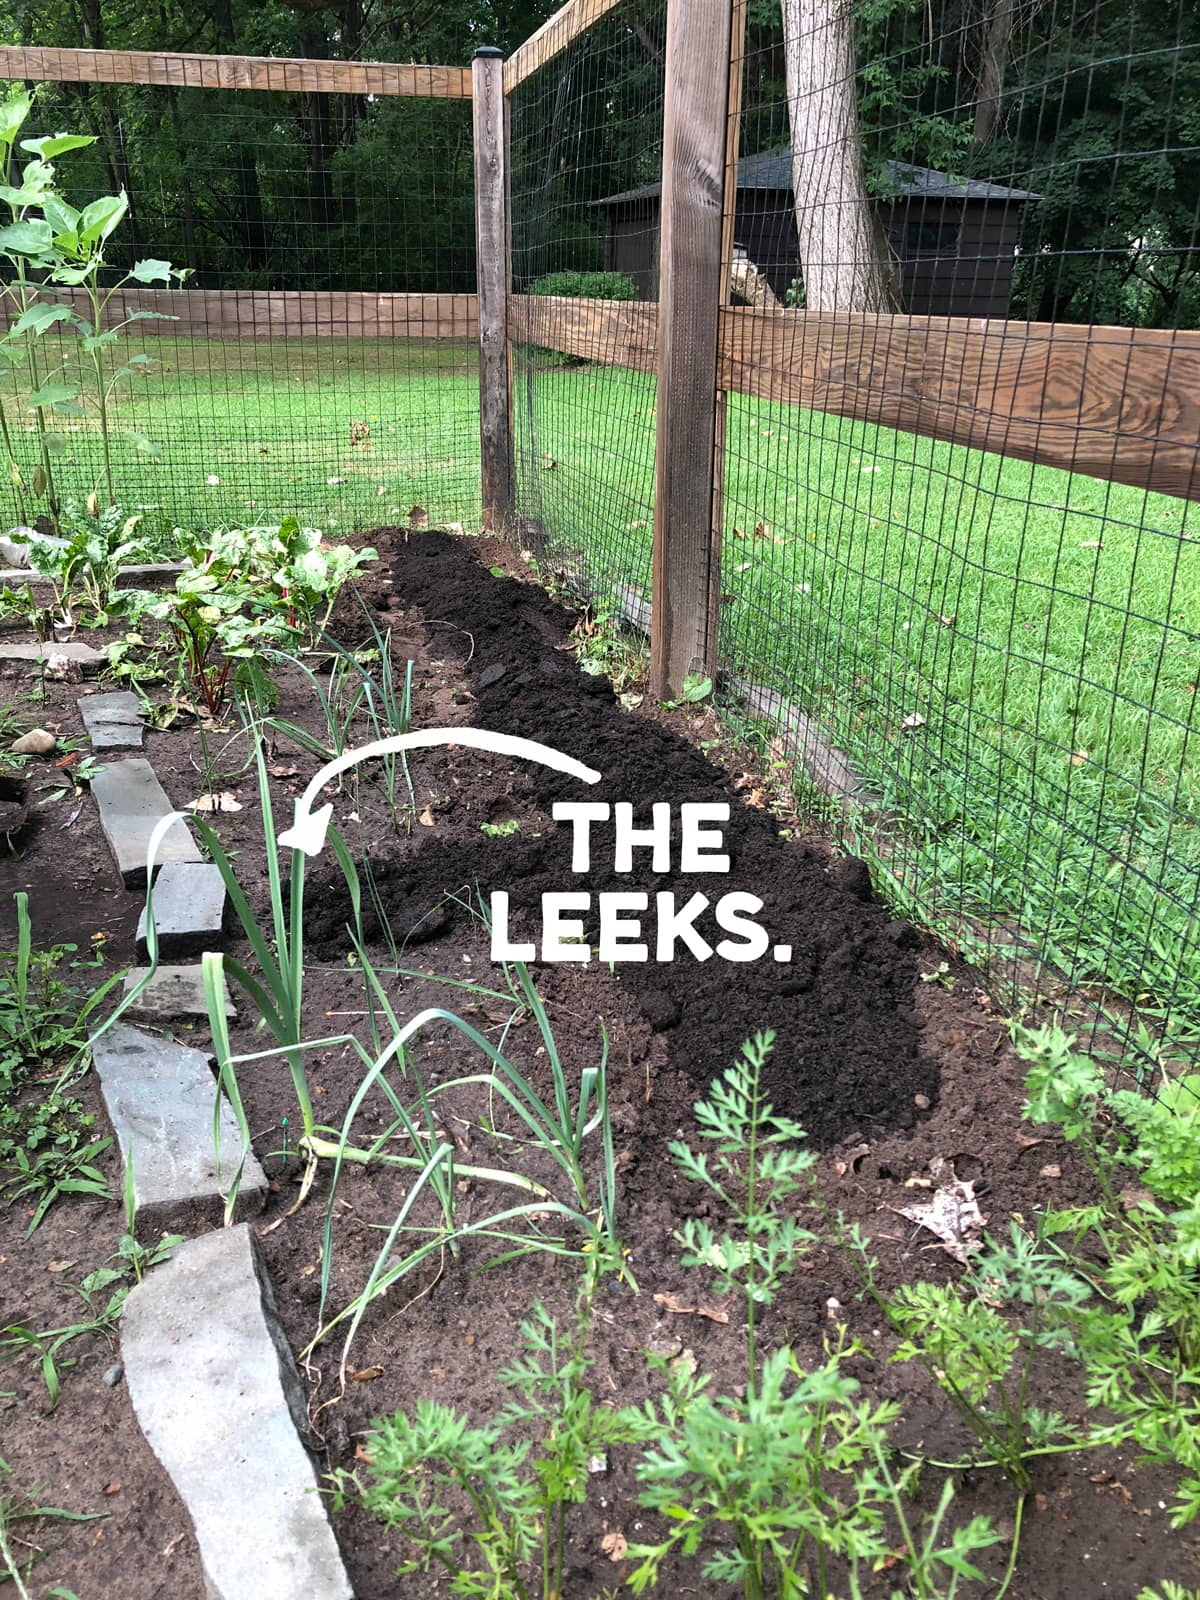 Leeks growing in the garden